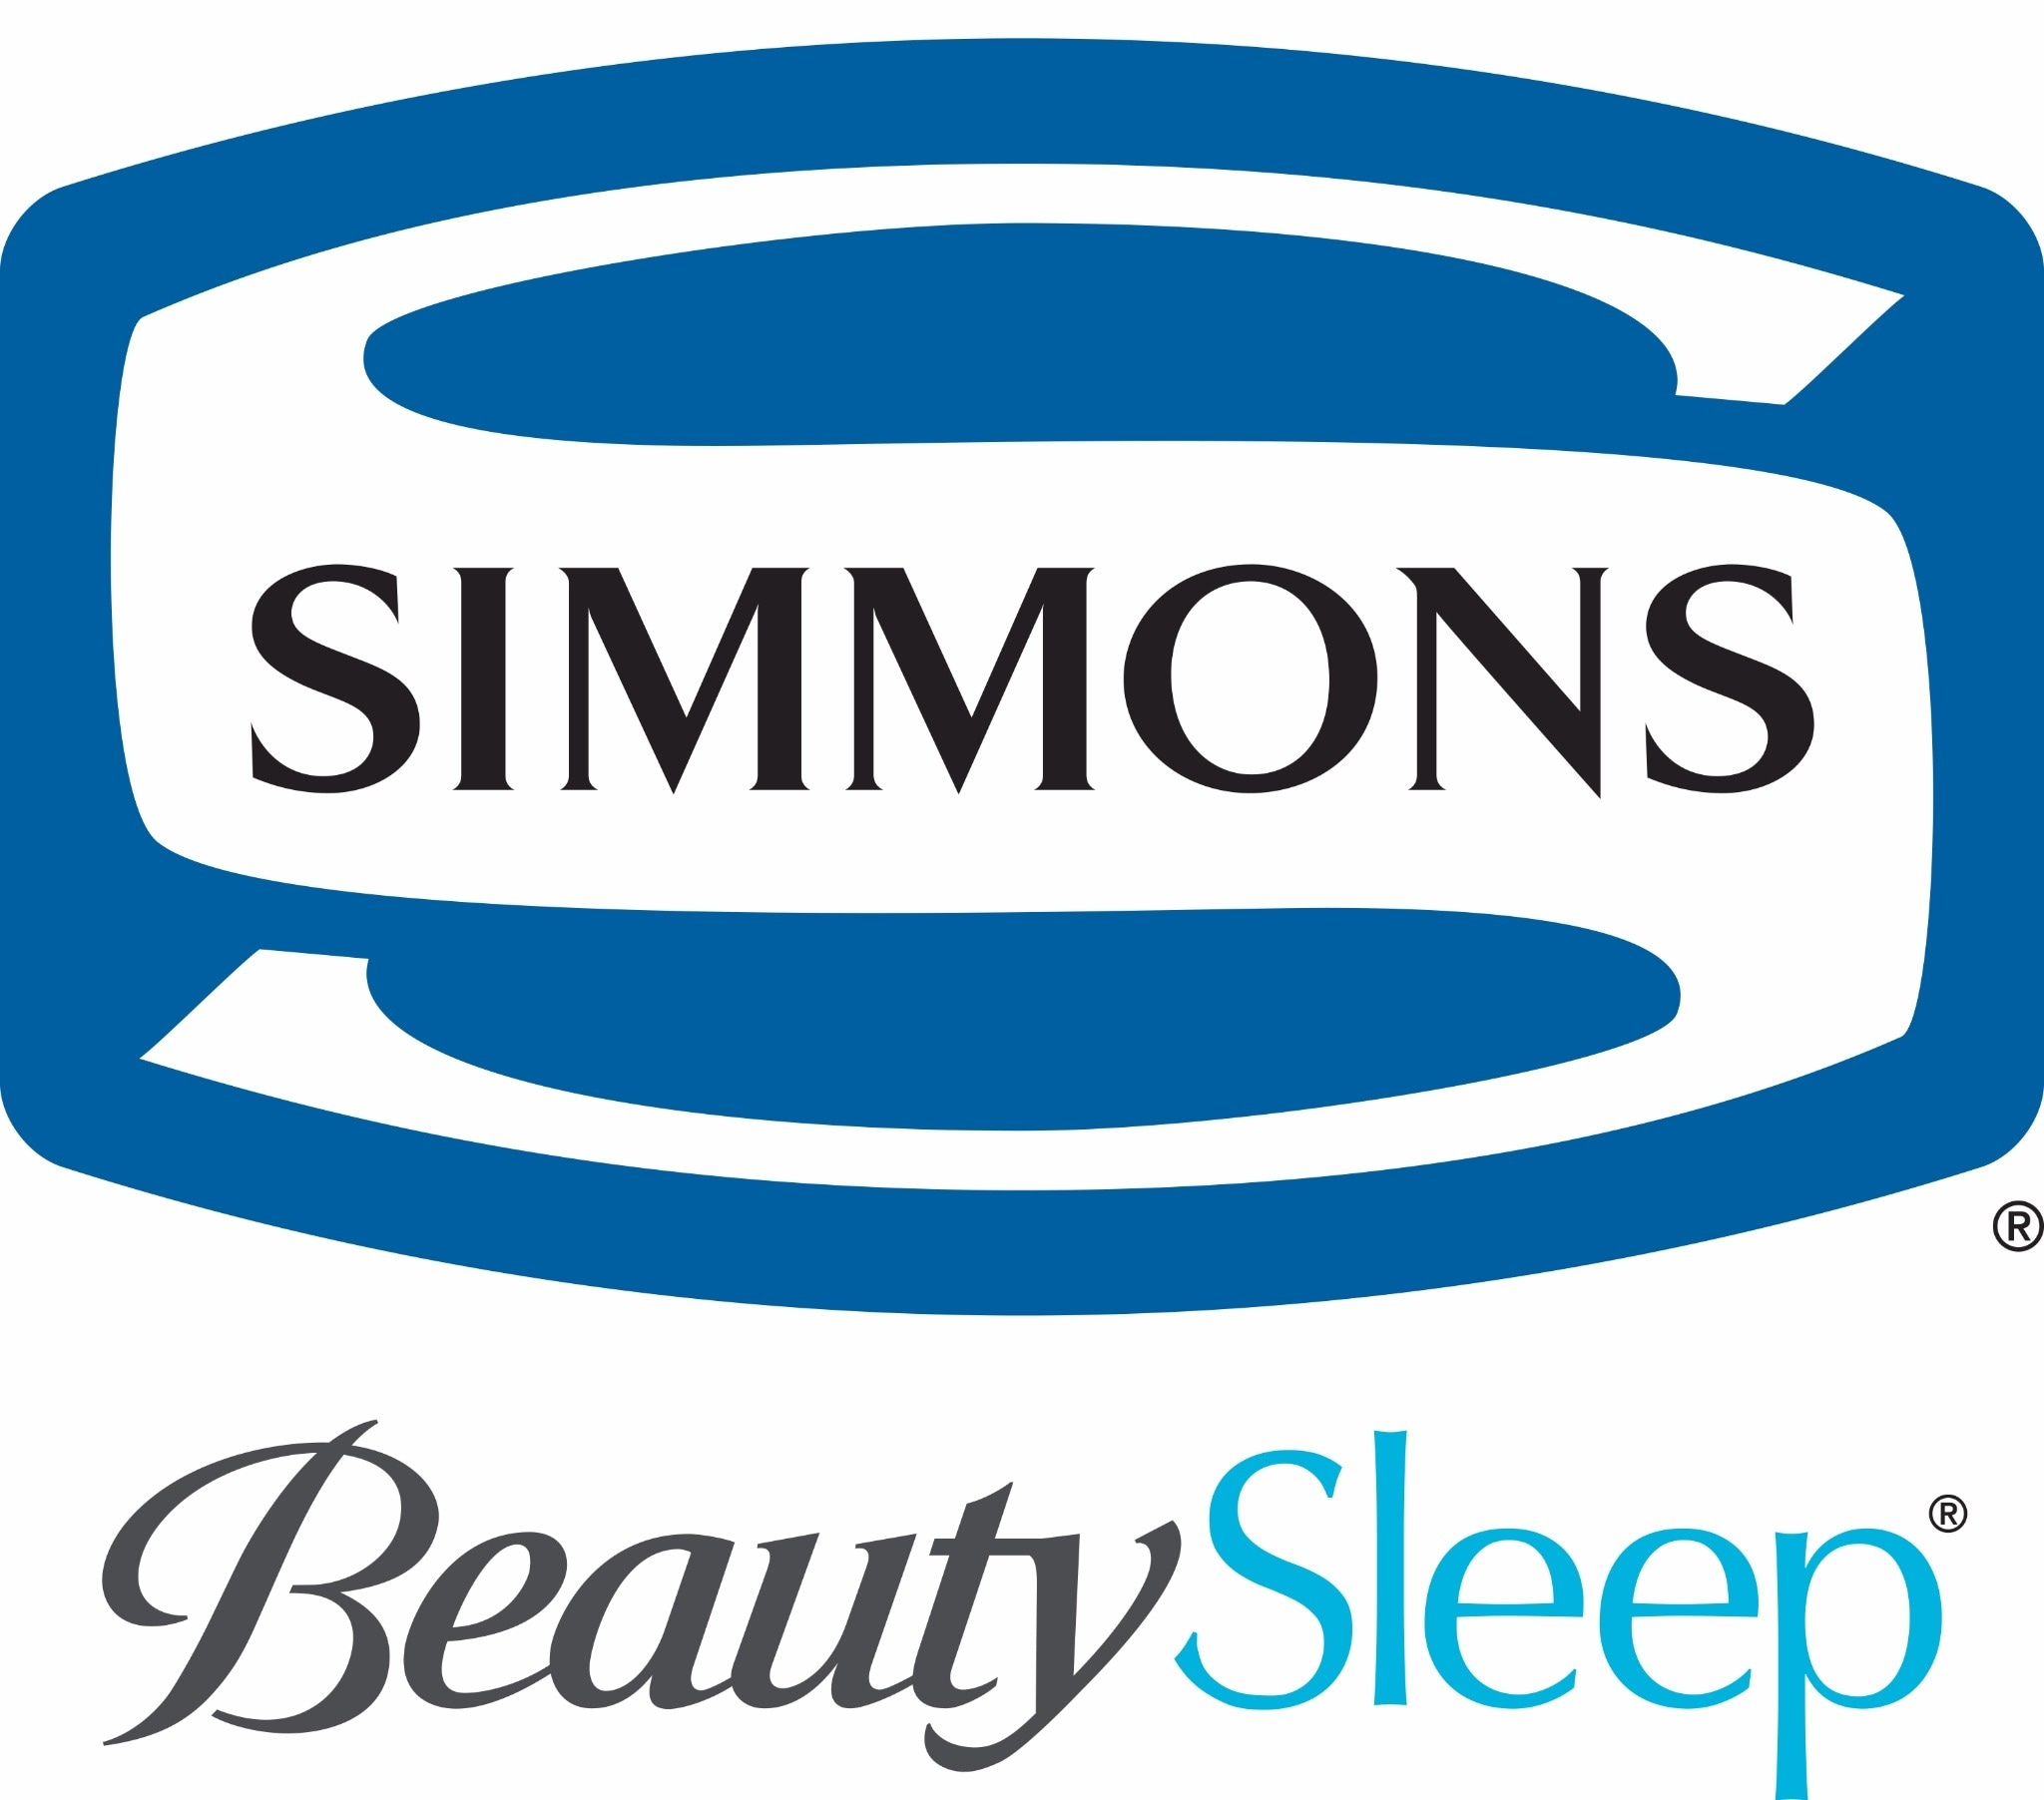 Simmons promo codes